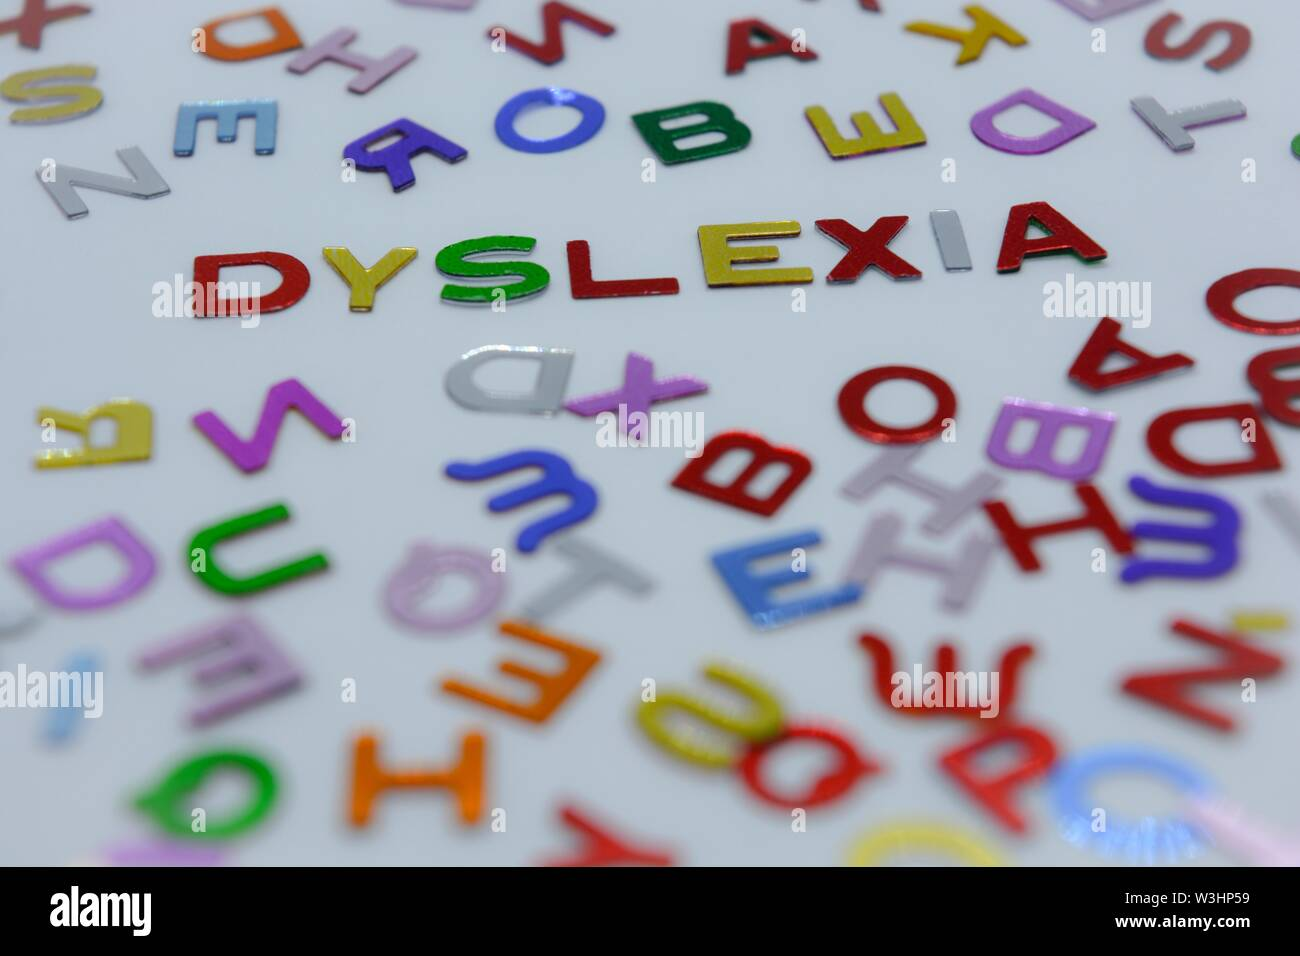 reading disability,learning disorder,language,dyslexia,decoding,read,learning,education,alphabet,word,abc,abstract,background,blue,color,colorful,copy - Stock Image